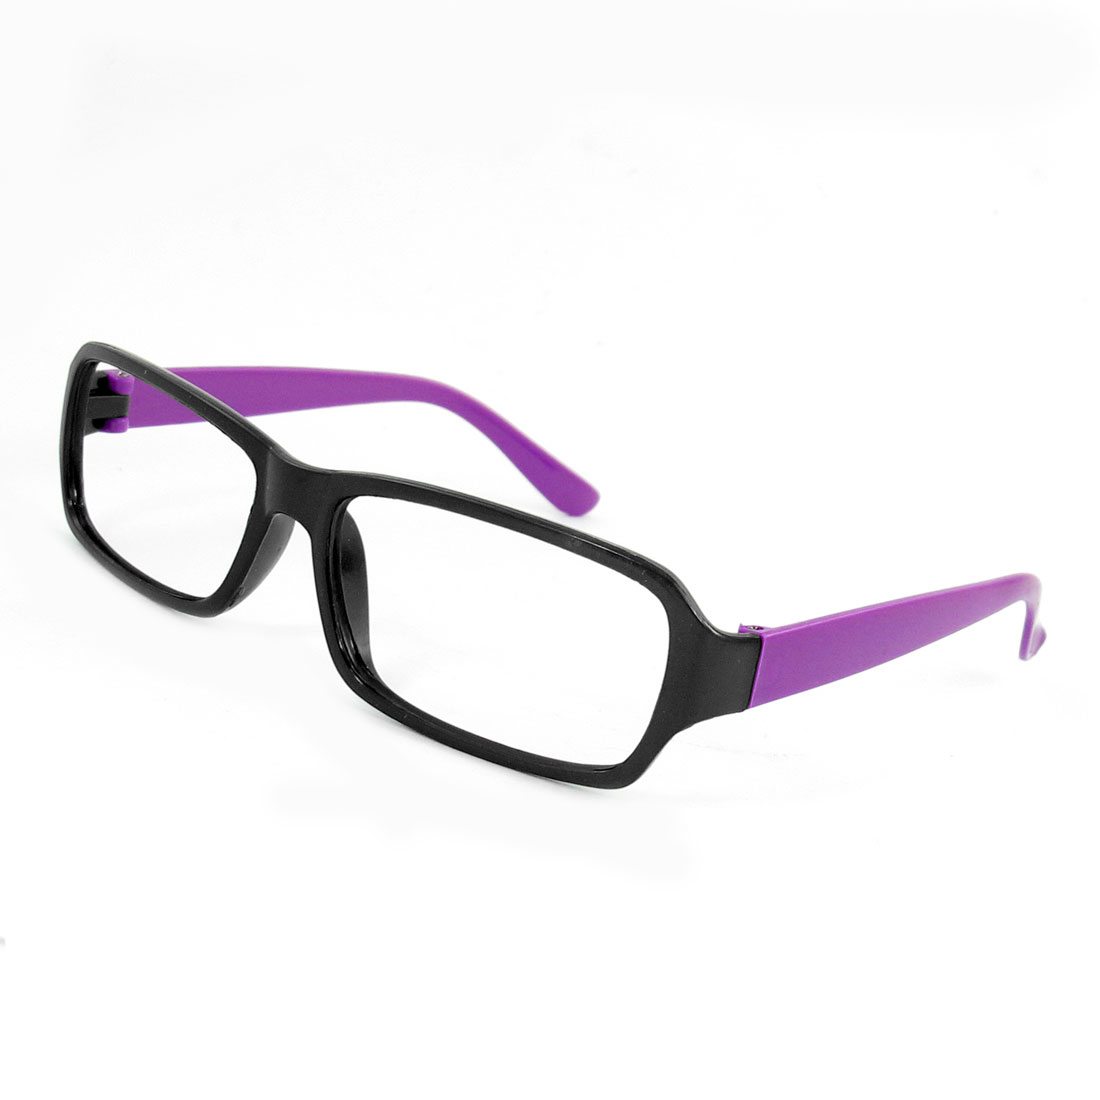 Black Purple Plastic Full Rim Eyewear Glasses Eyeglasses Frame ...